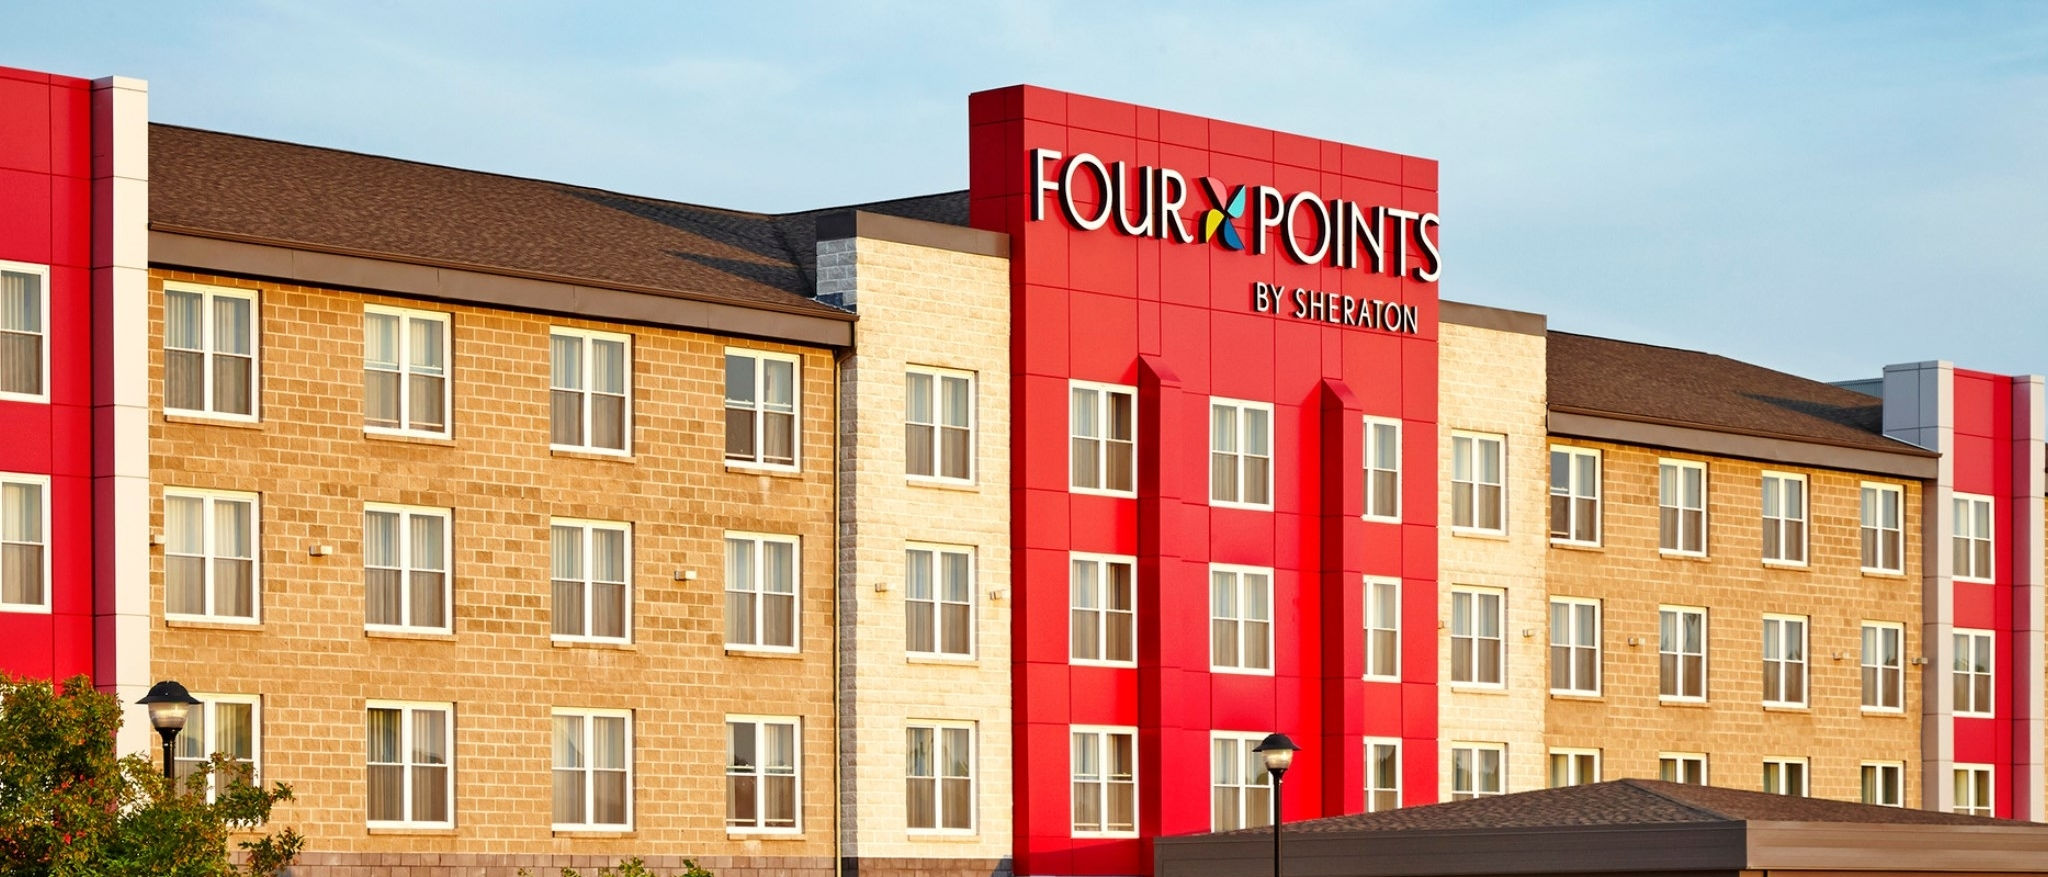 Four Points by Sheraton Moncton - Hotel Exterior